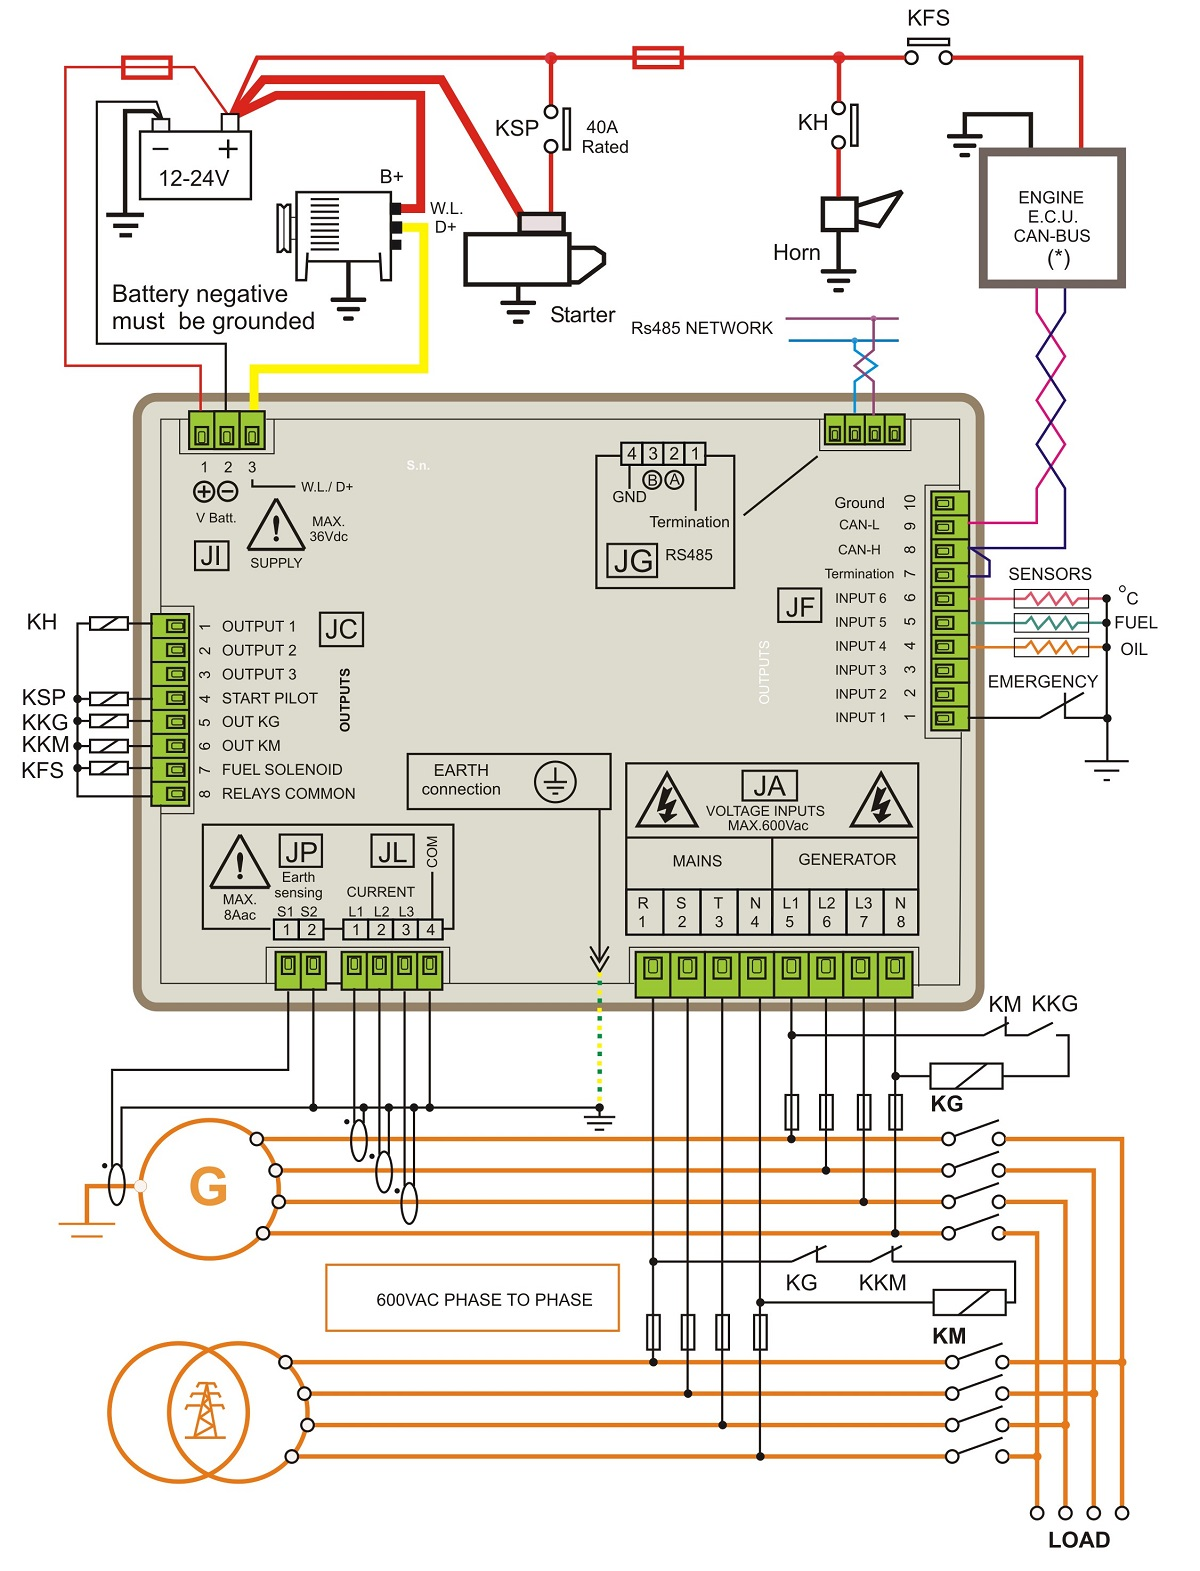 BeK3 Automatic Mains Failure Wiring Diagram what is amf panel genset controller main wiring diagram 2015 ford f150 at mifinder.co